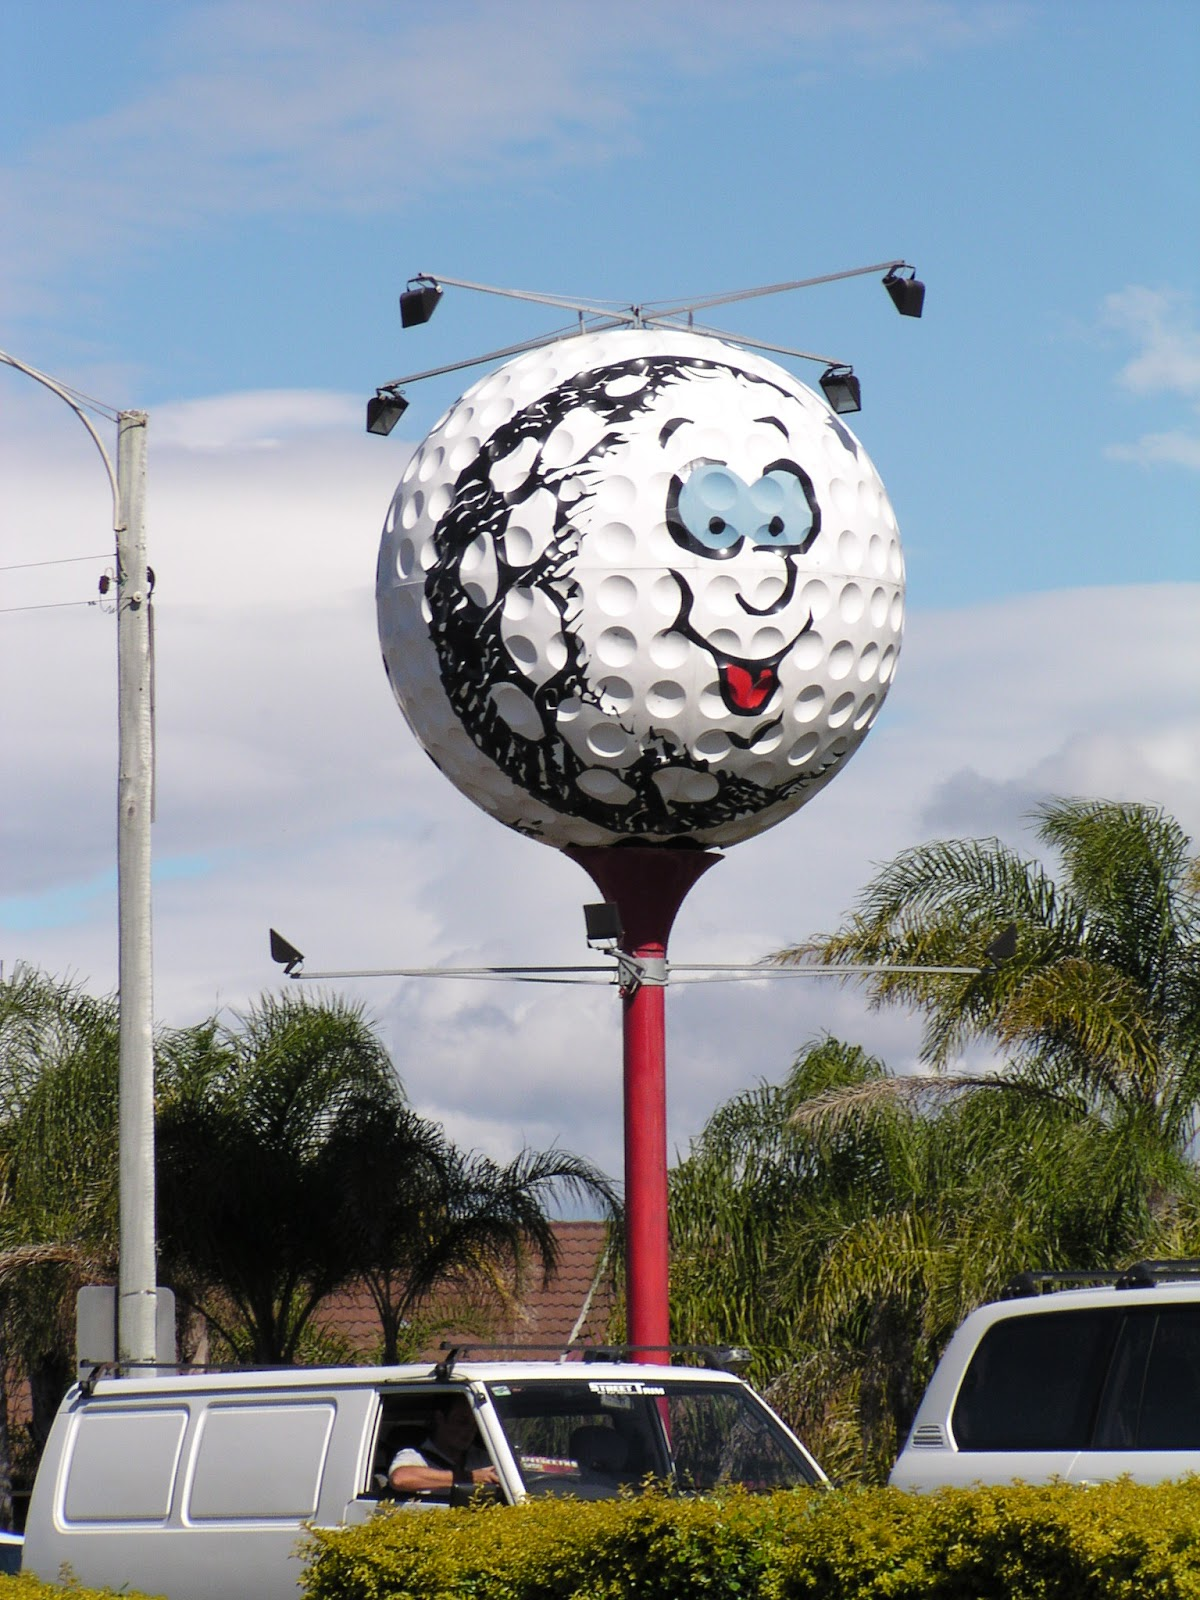 the big golf ball with a smiling face painted on it sitting on top of a pole